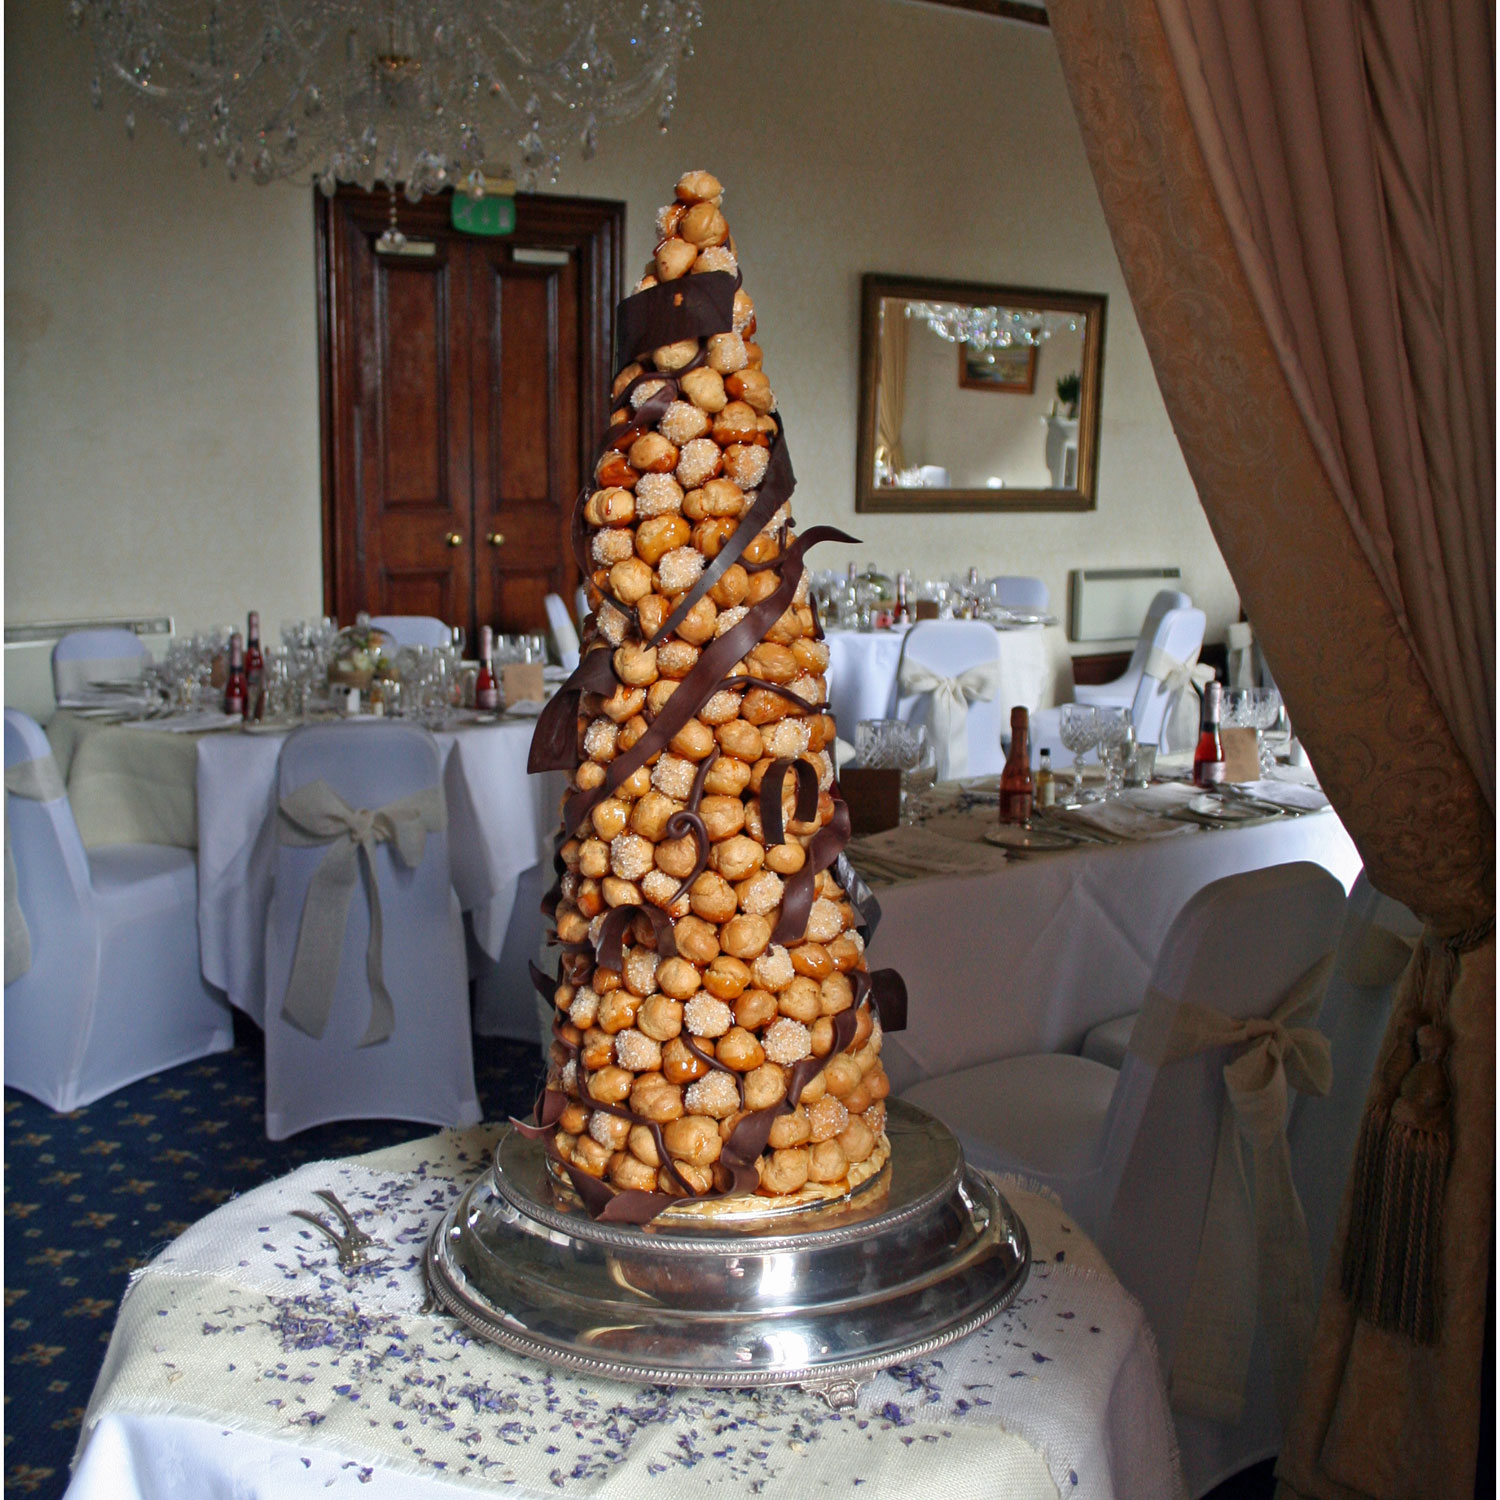 Croquembouche with Chocolate Decorations